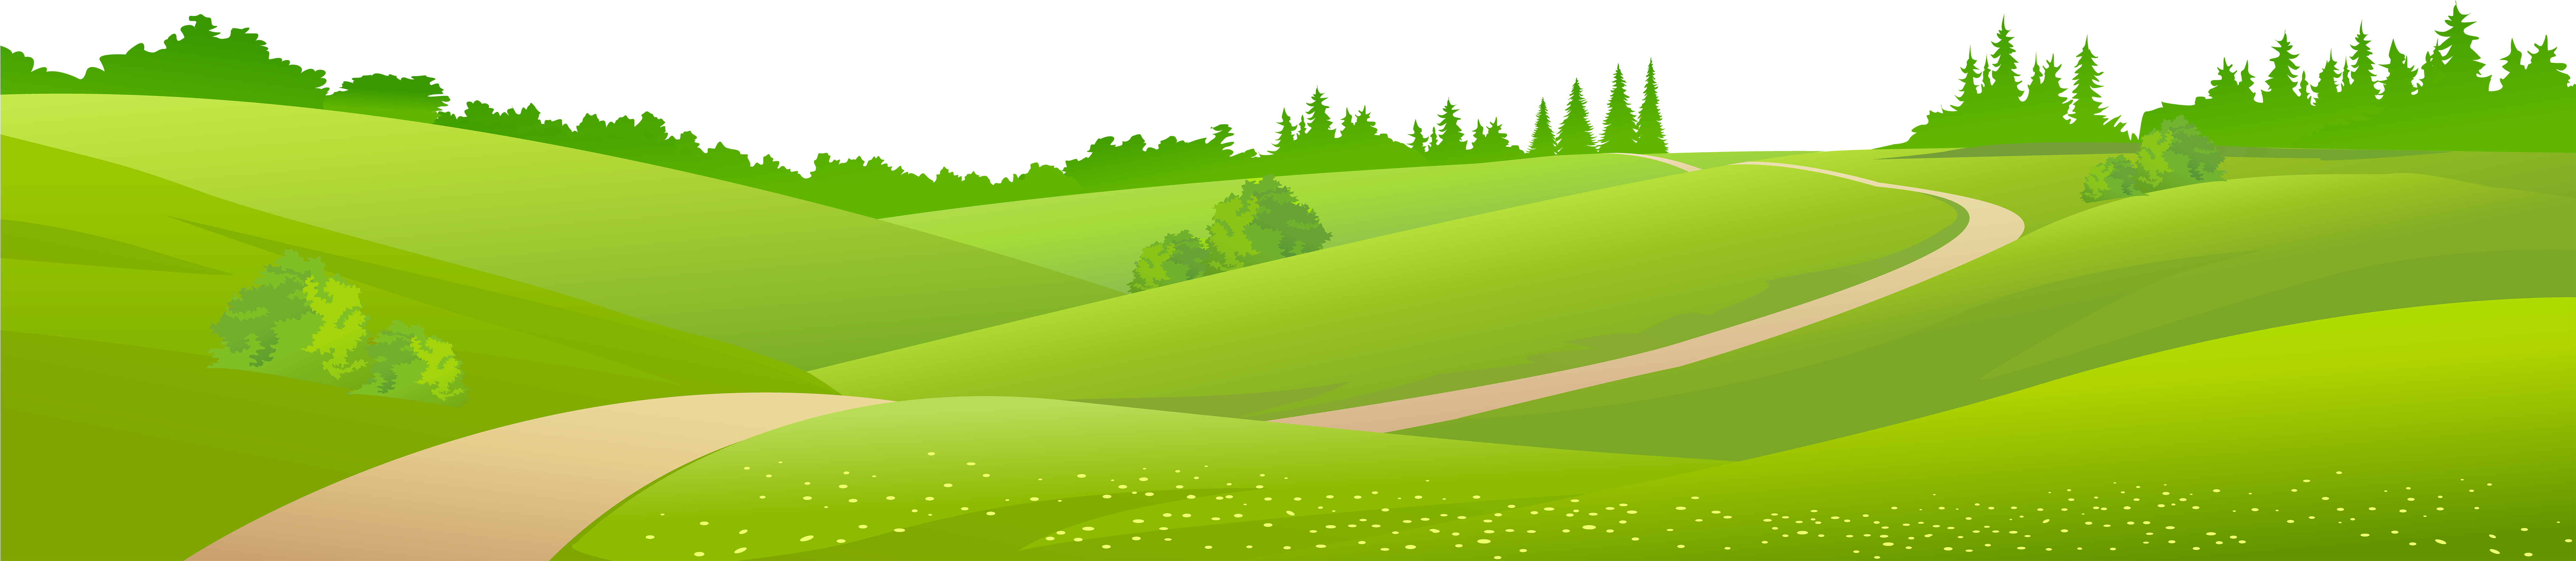 vector black and white Valley clipart grassland. Hd png transparent background.